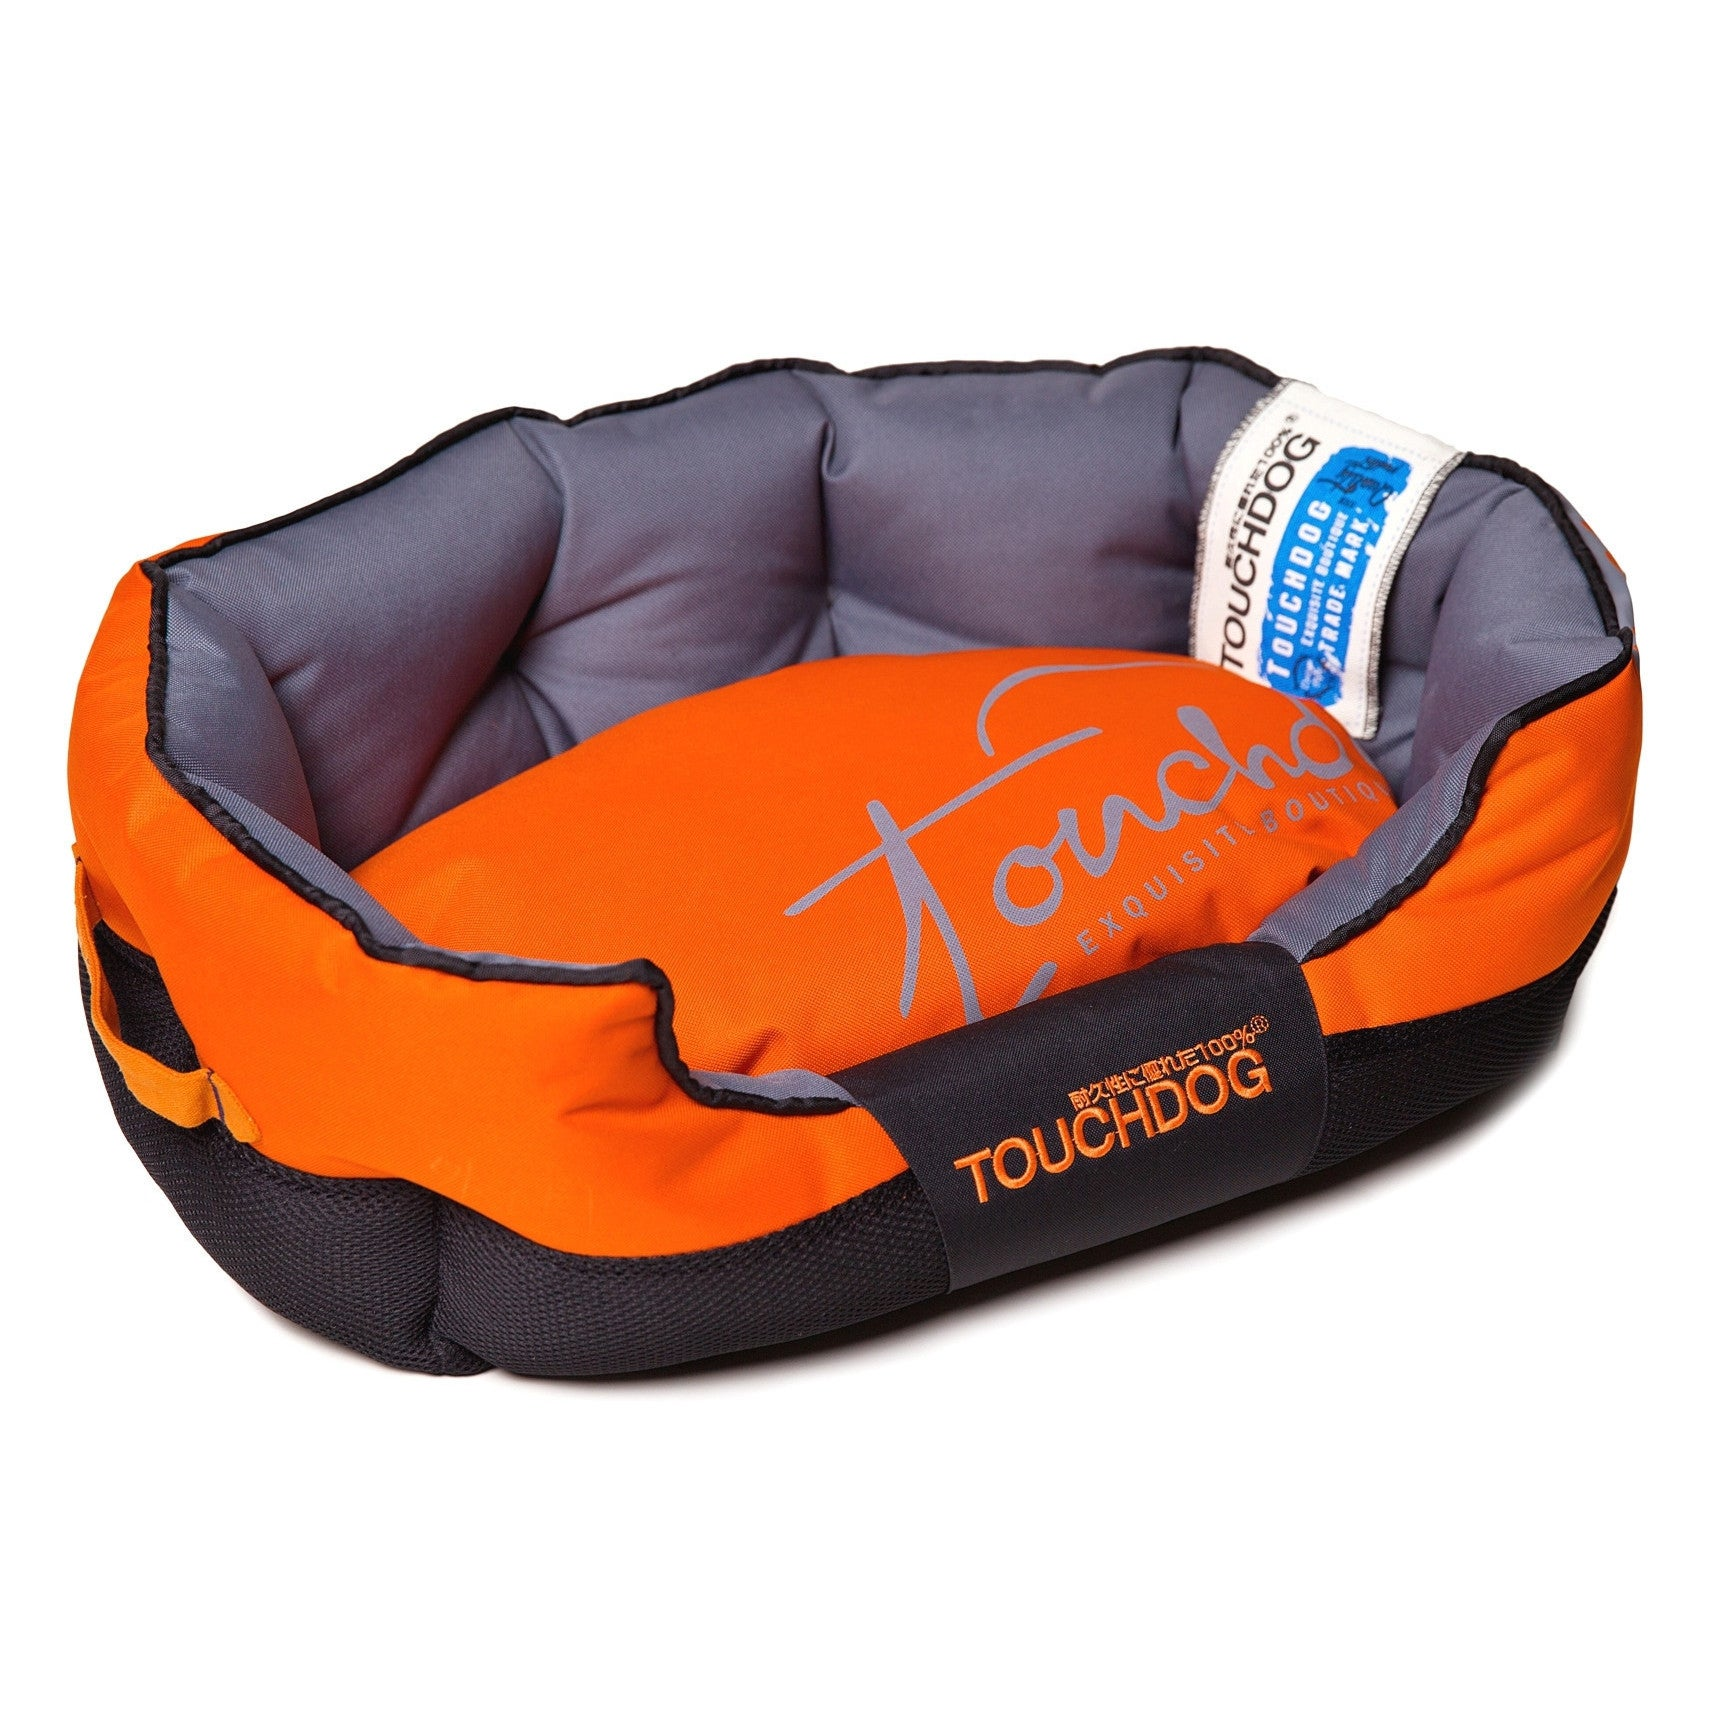 Toughdog Performance-Max Sporty Comfort Cushioned Dog Bed (LG)